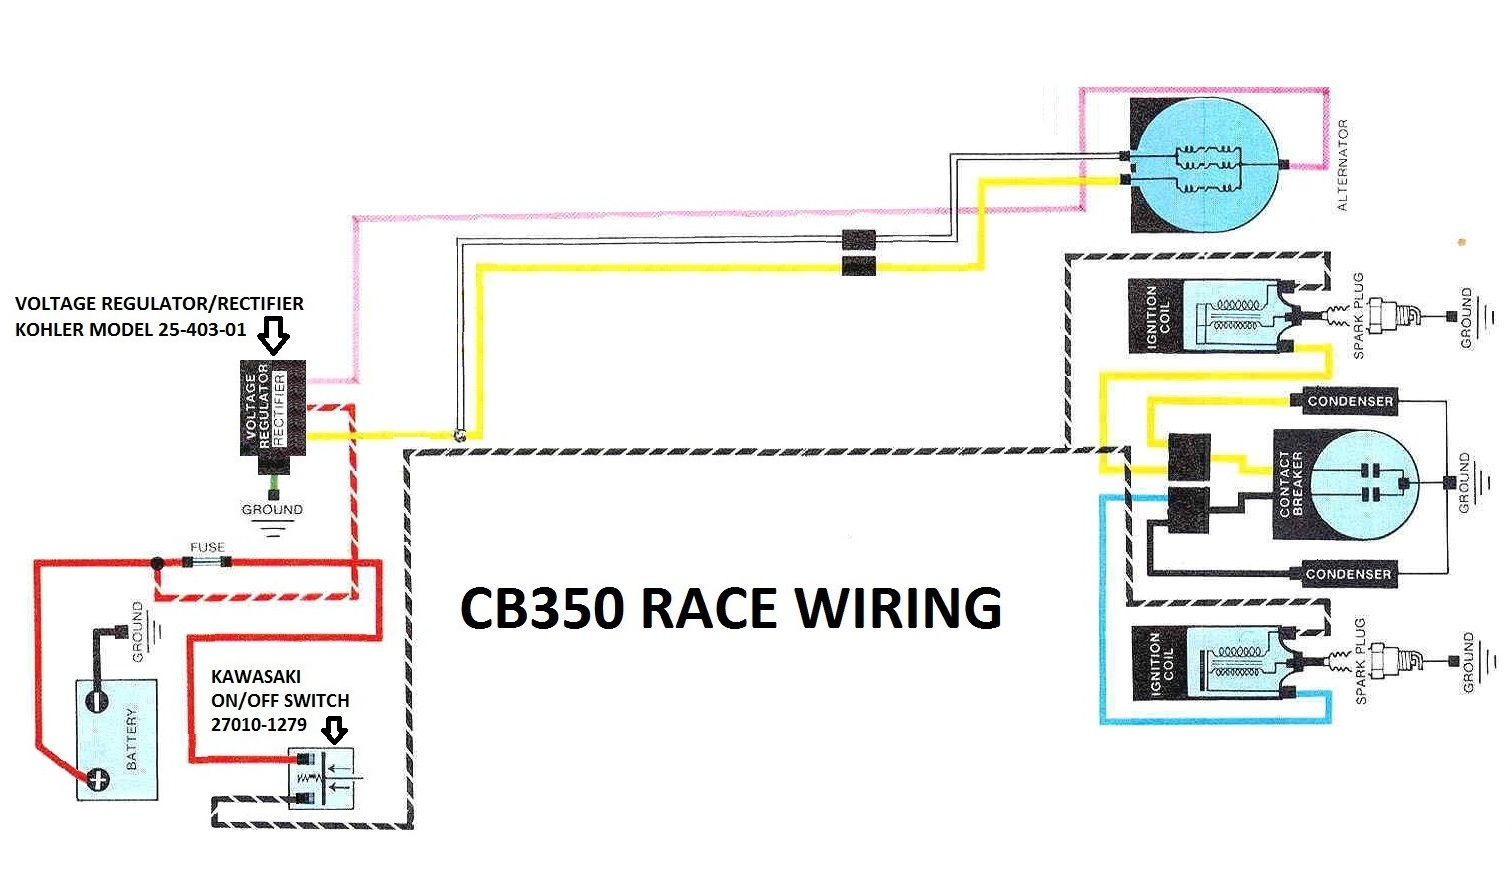 cb350 race wiring a question about voltage regulator wiring. Black Bedroom Furniture Sets. Home Design Ideas